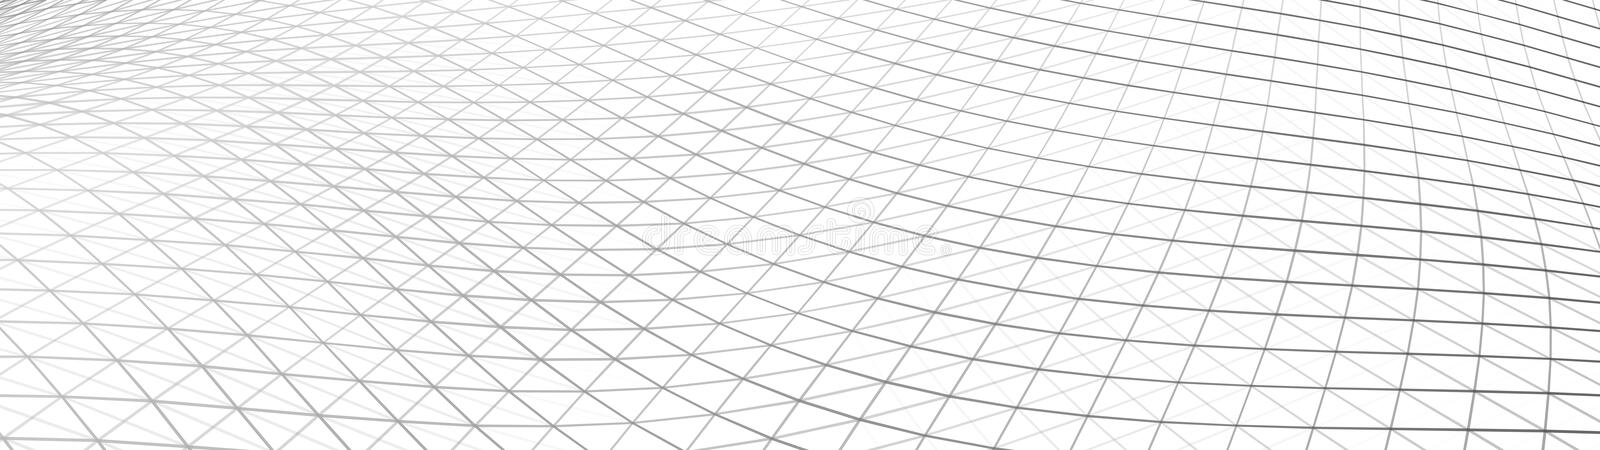 Vector gradient perspective grid. Detailed lines on white background. Widescreen illustration. Vector perspective grid. Lines on white background royalty free illustration